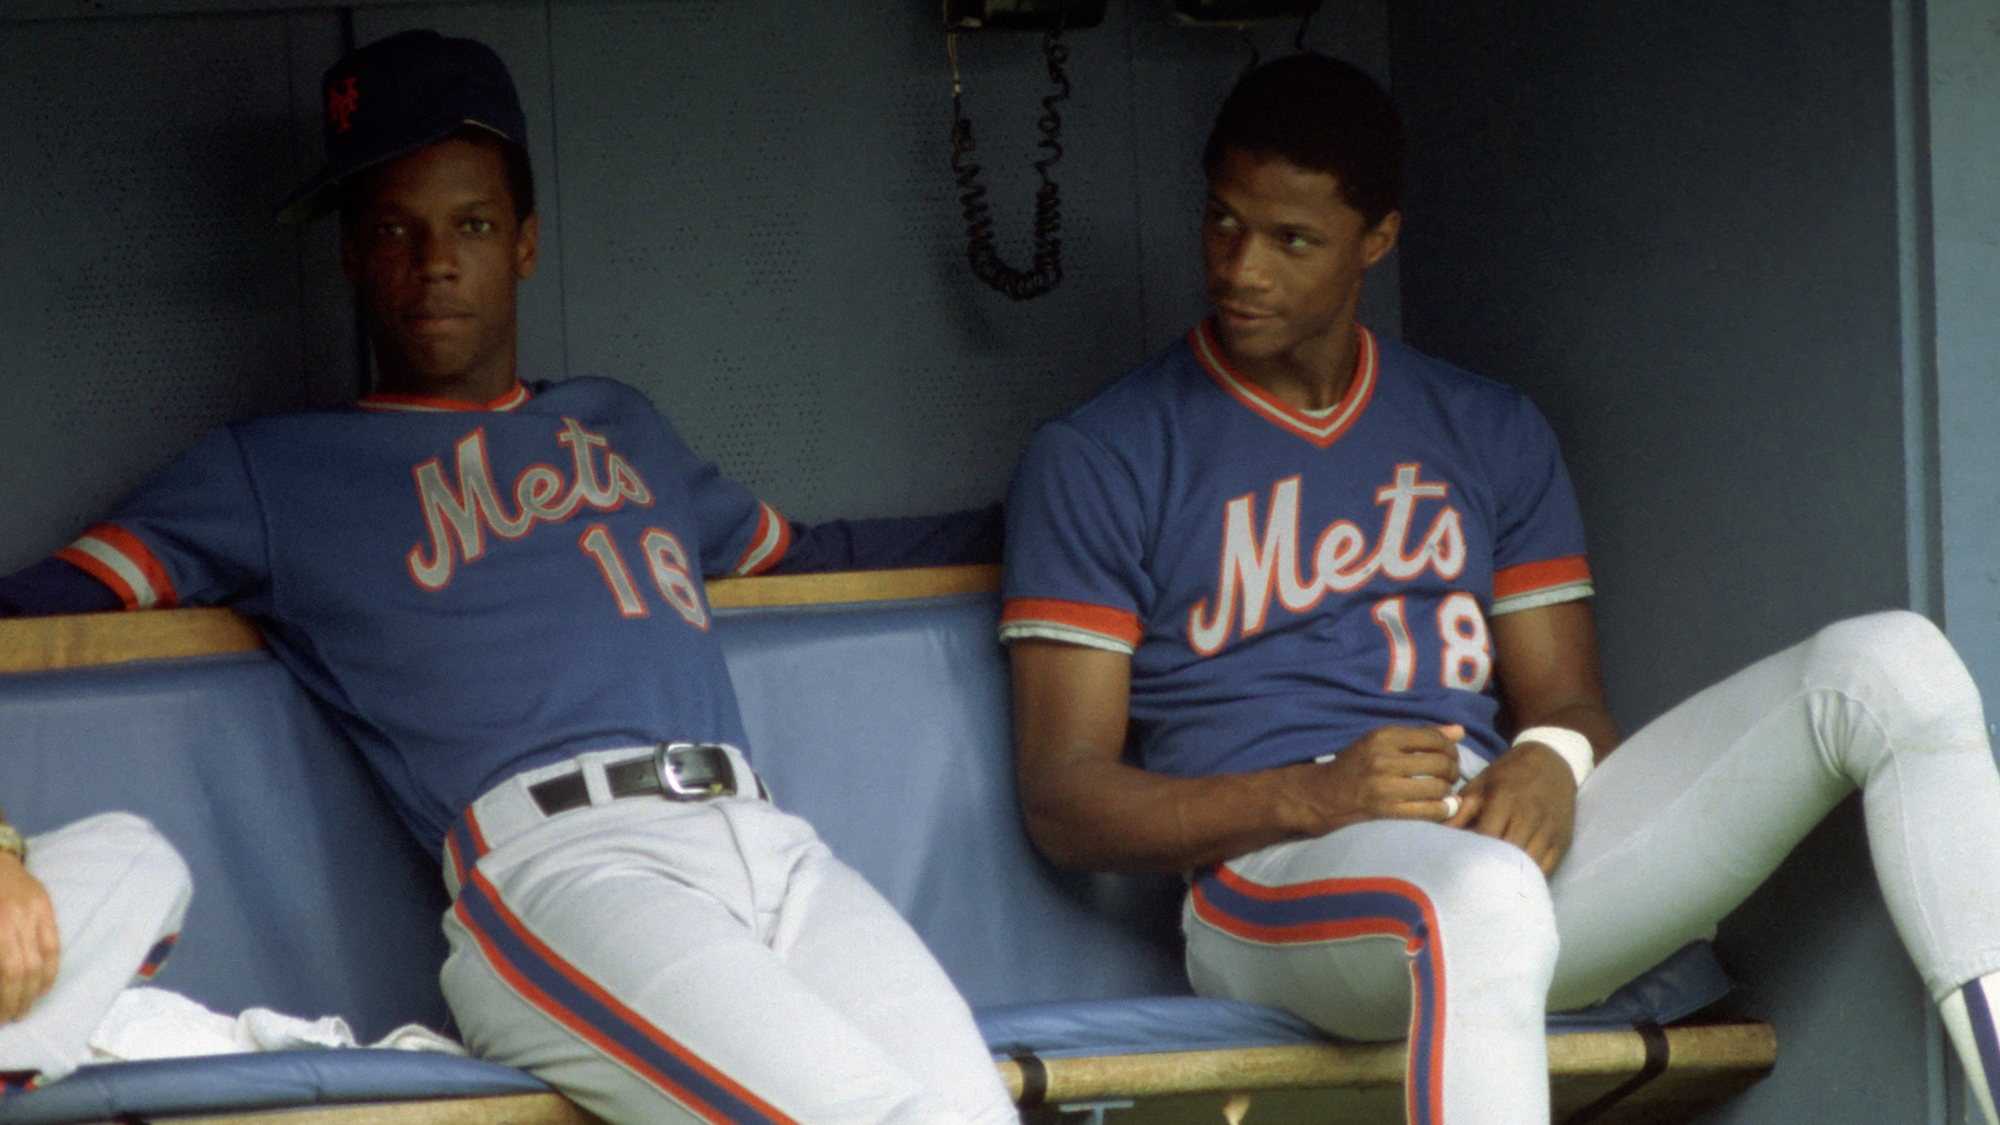 Mets Gooden and Strawberry